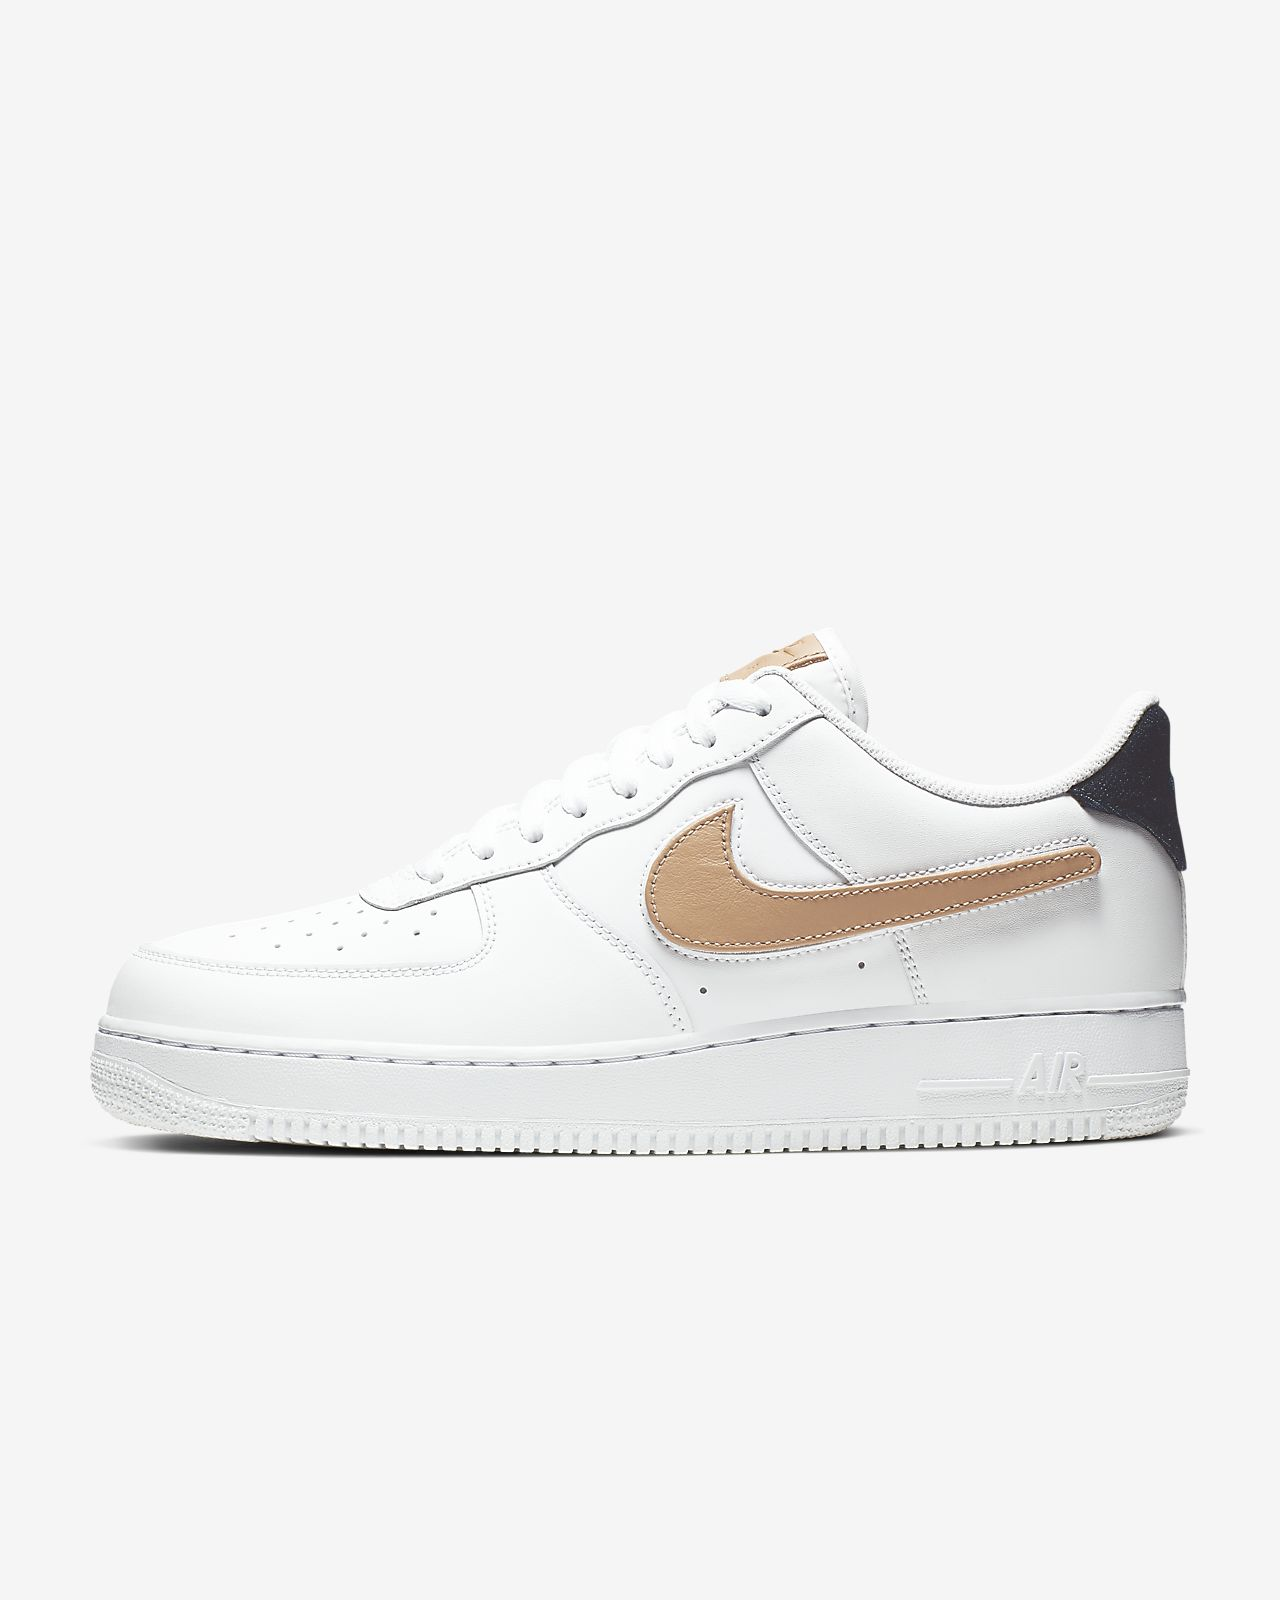 meilleure sélection 76d83 cec33 Nike Air Force 1 '07 LV8 3 Removable Swoosh Men's Shoe